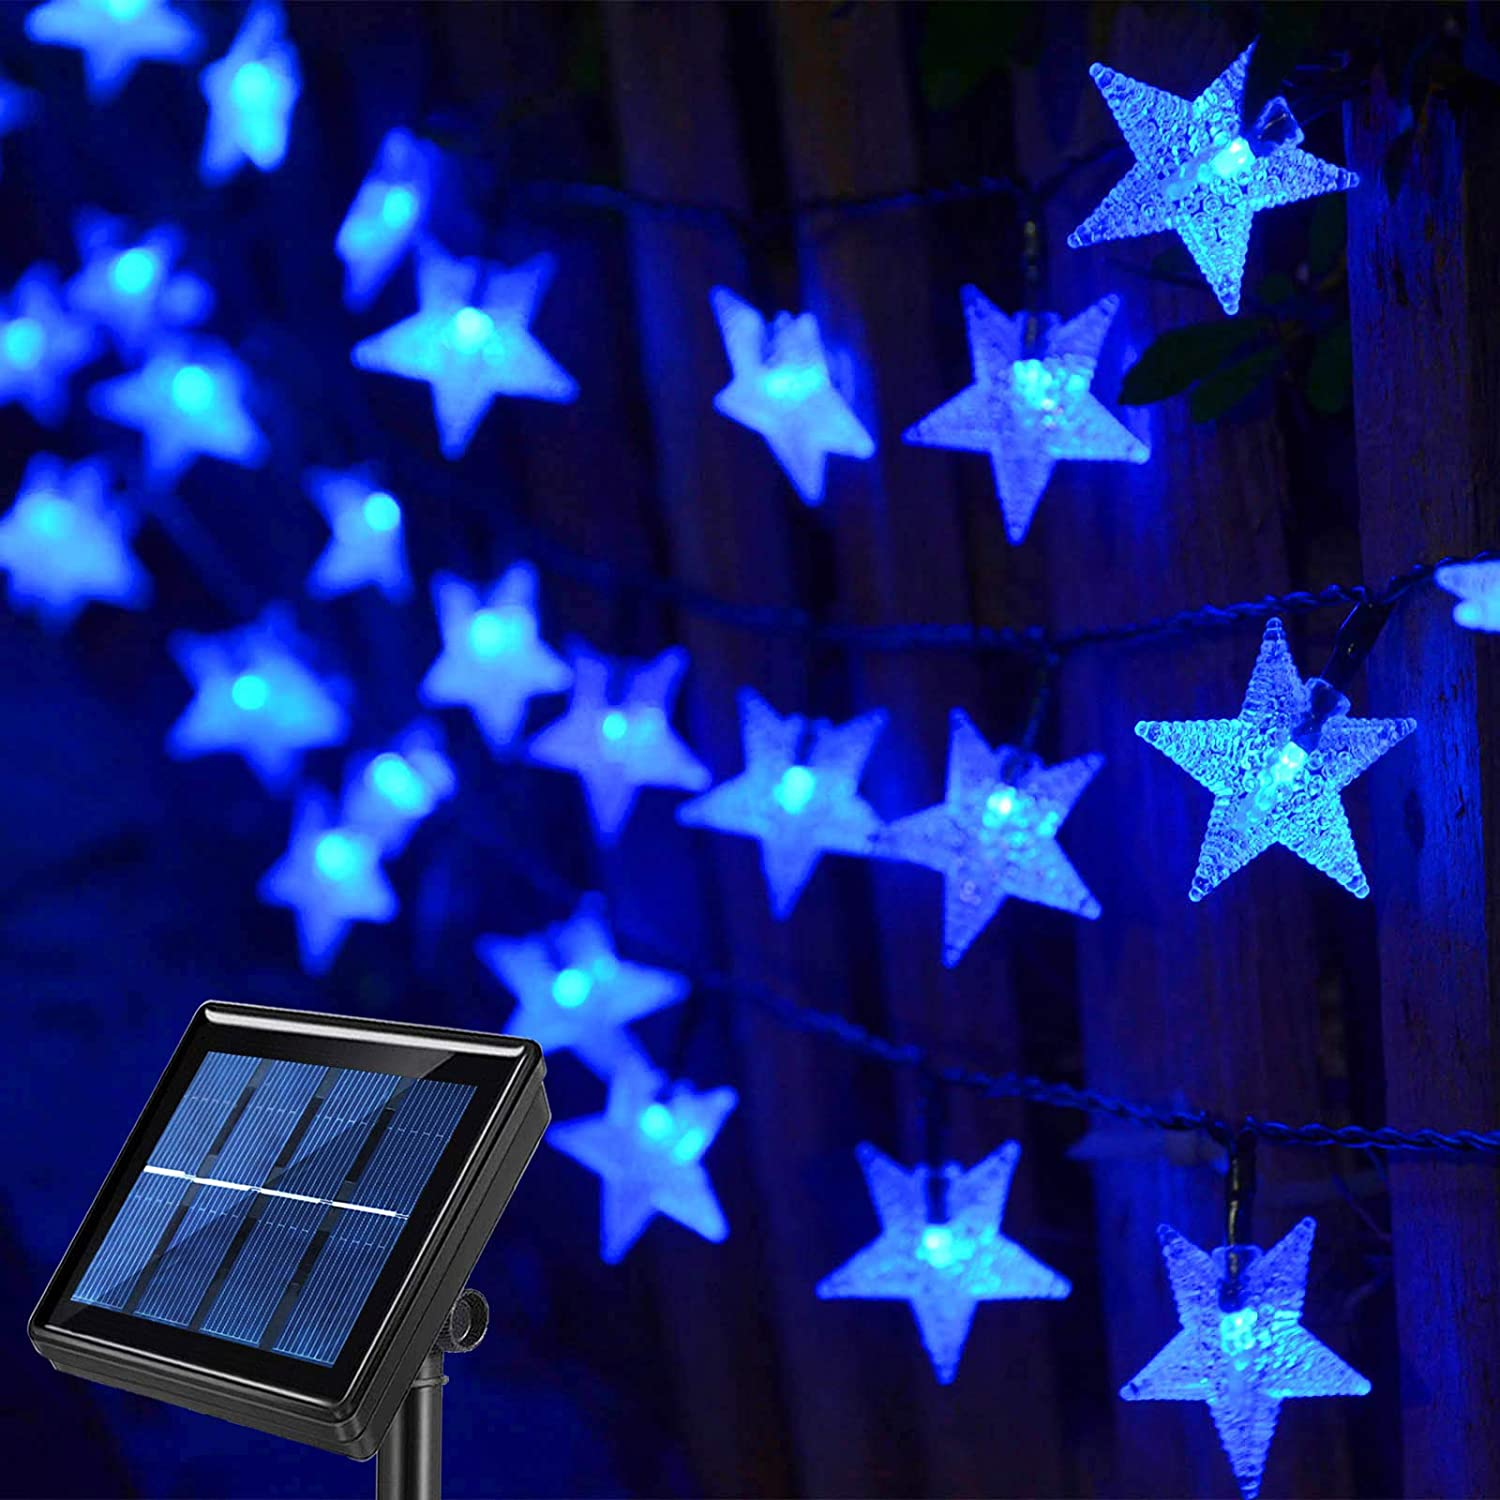 50FT 120 LED Star Shaped Solar String Lights Blue,Waterproof Outdoor Fairy Lights Solar Powered for Garden,Canopy,Gazebo,Porch,Pergola,Lawn Patio,Landscape,Balcony,Outside Christmas Tree Decorations